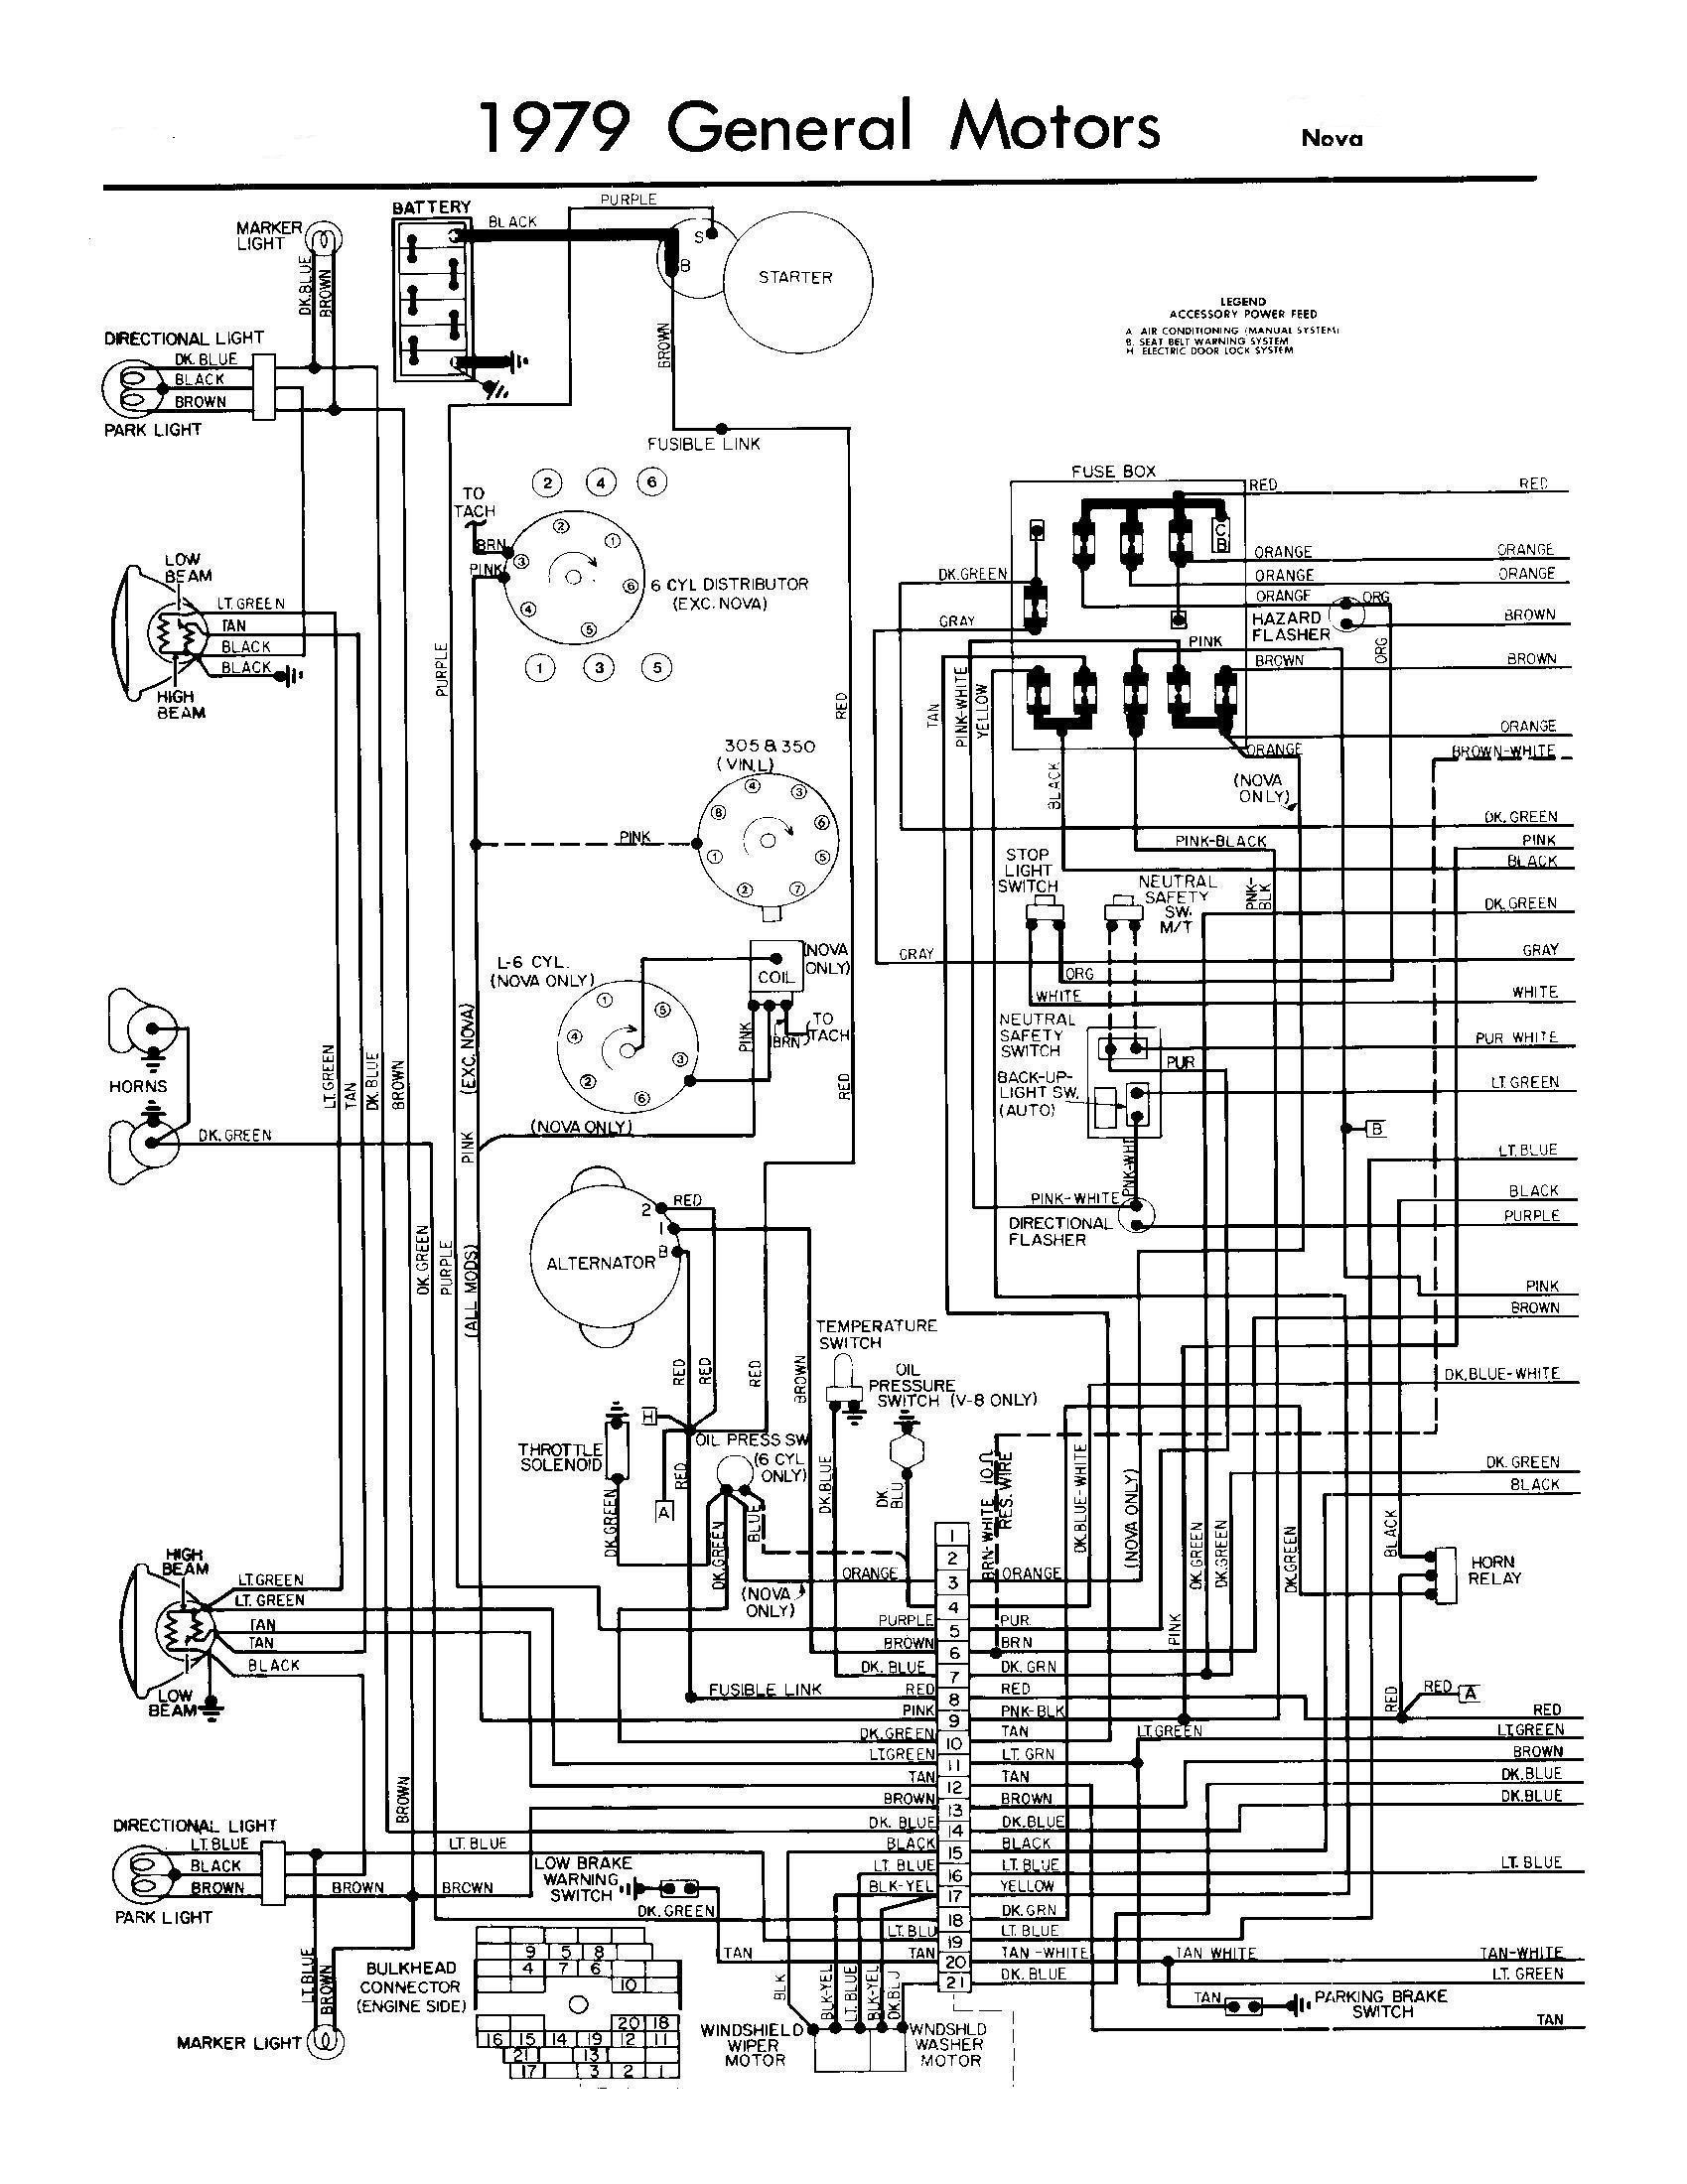 Floppy Disk Connection Diagram Free Download Wiring Diagrams ...